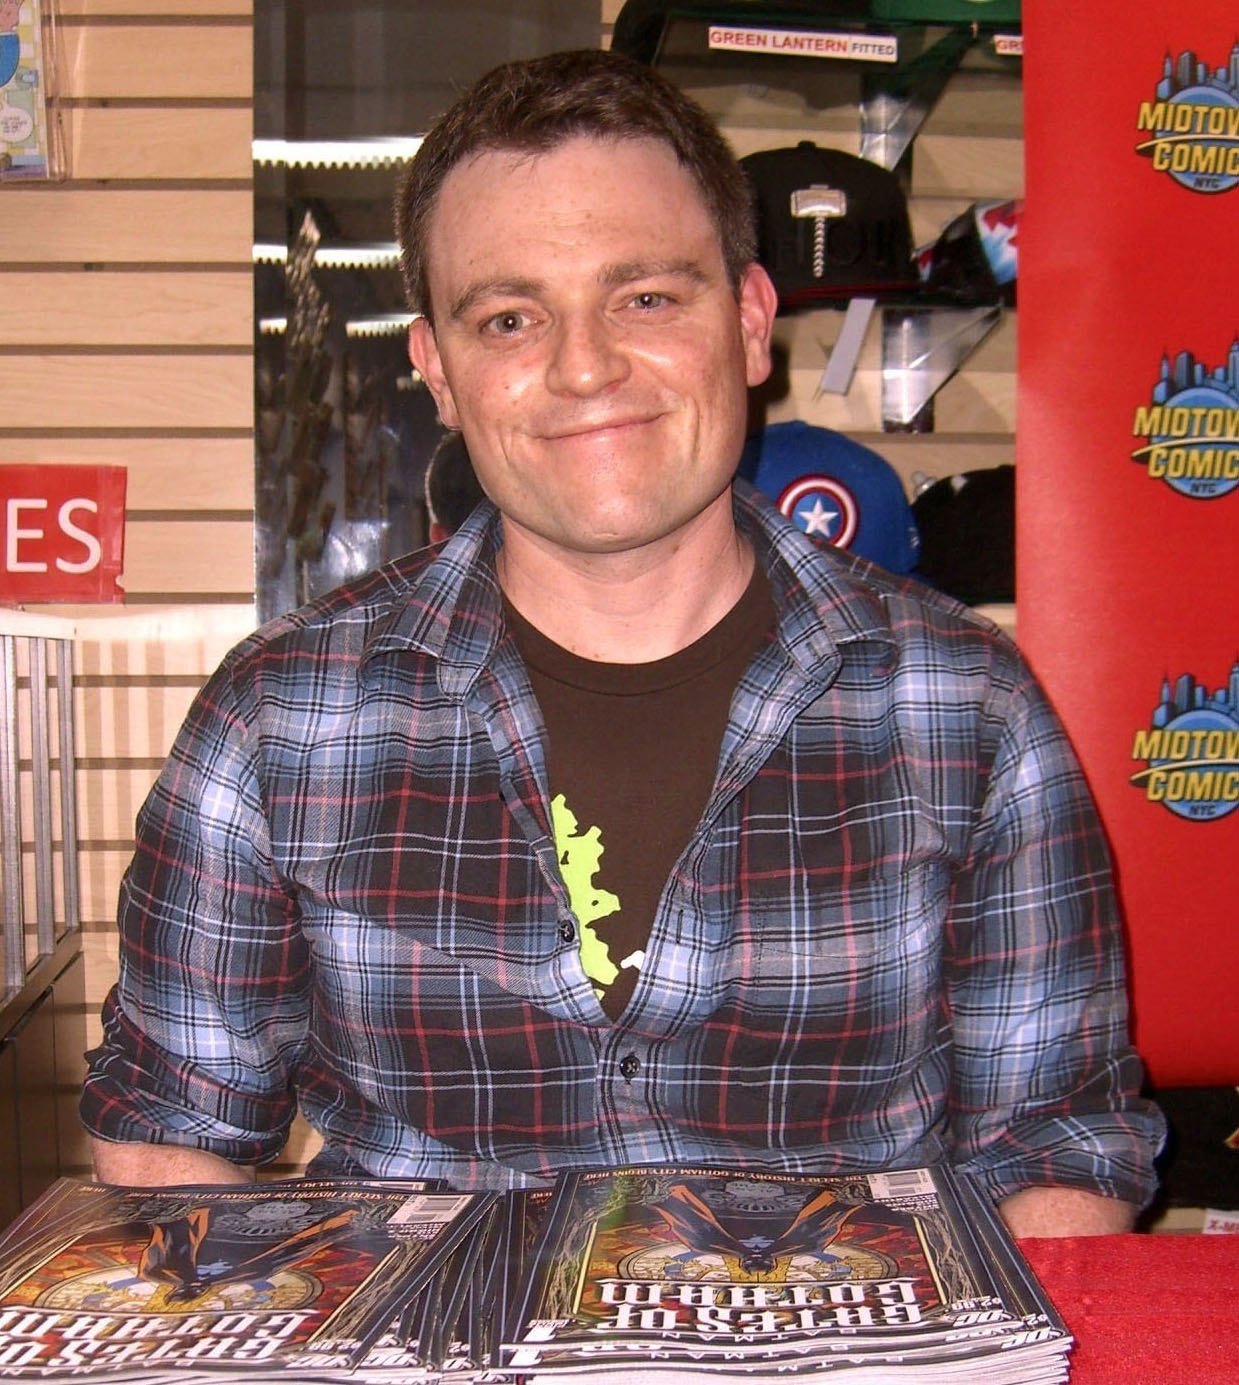 The 42-year old son of father (?) and mother(?) Scott Snyder in 2018 photo. Scott Snyder earned a  million dollar salary - leaving the net worth at 1 million in 2018